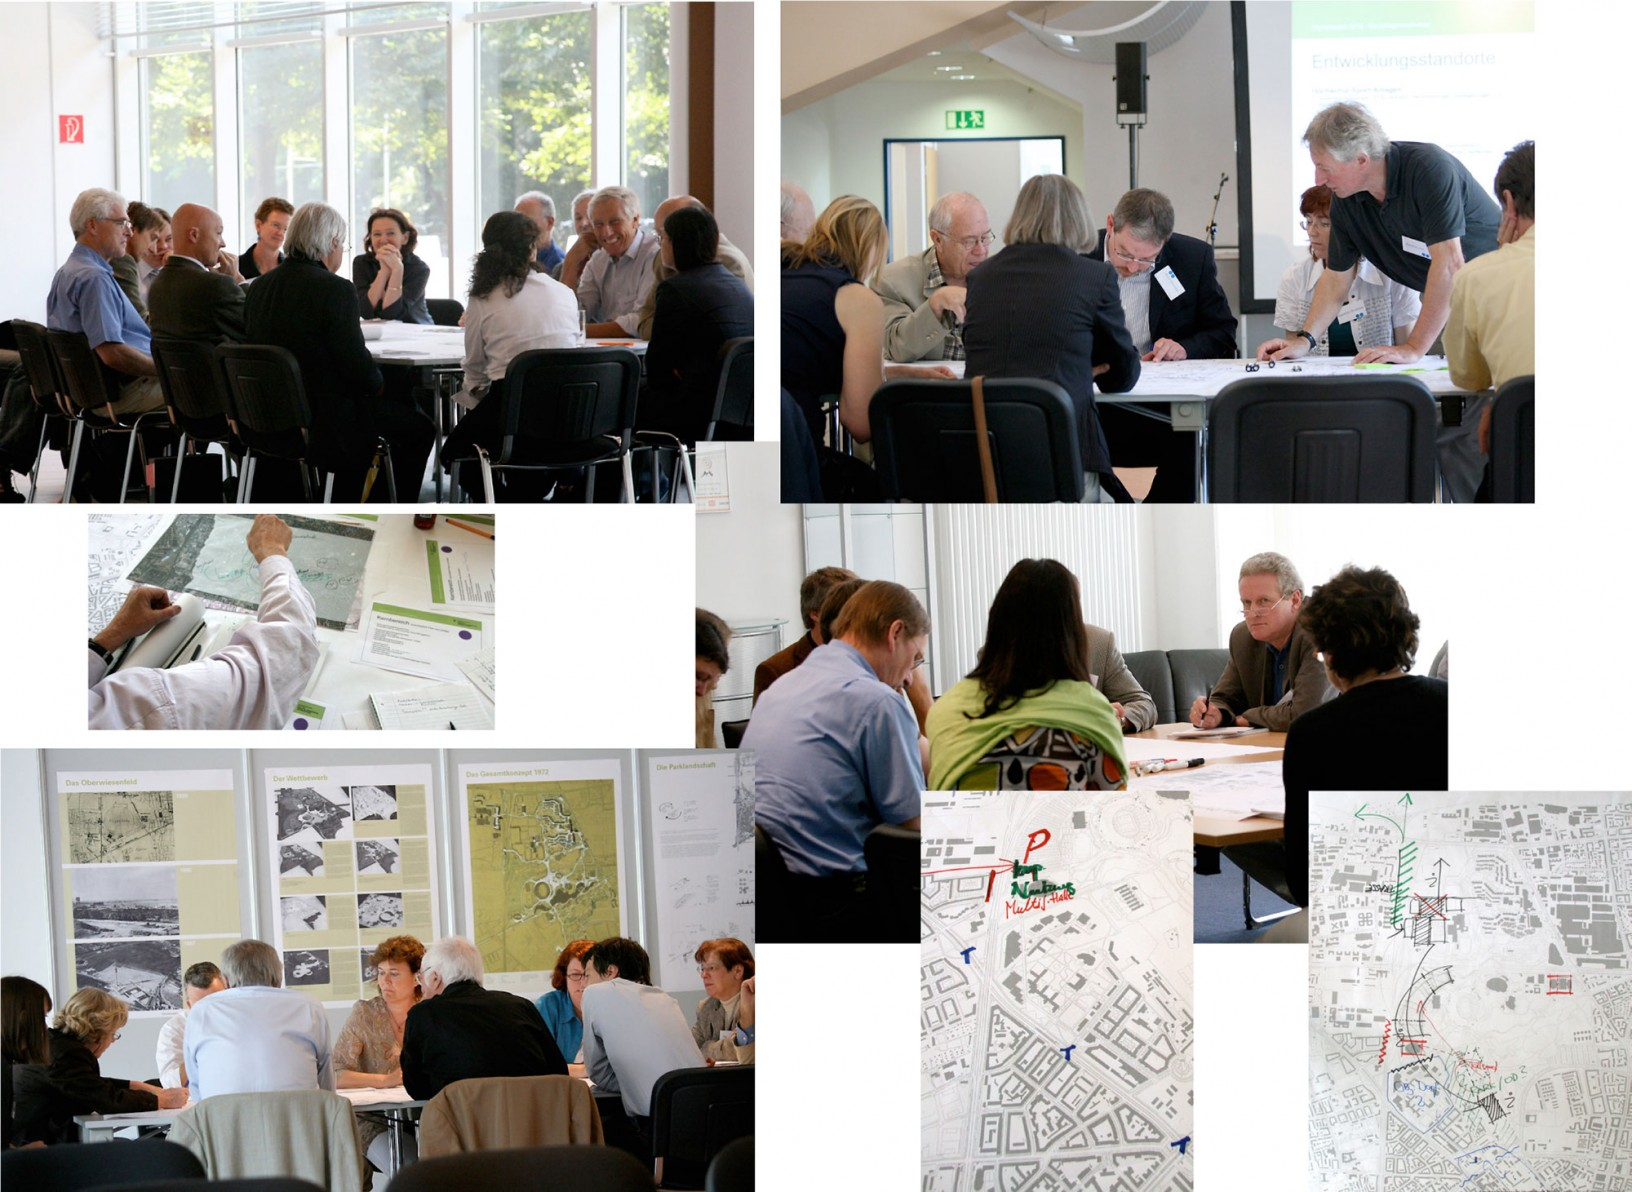 09-impressionen-workshop.jpg